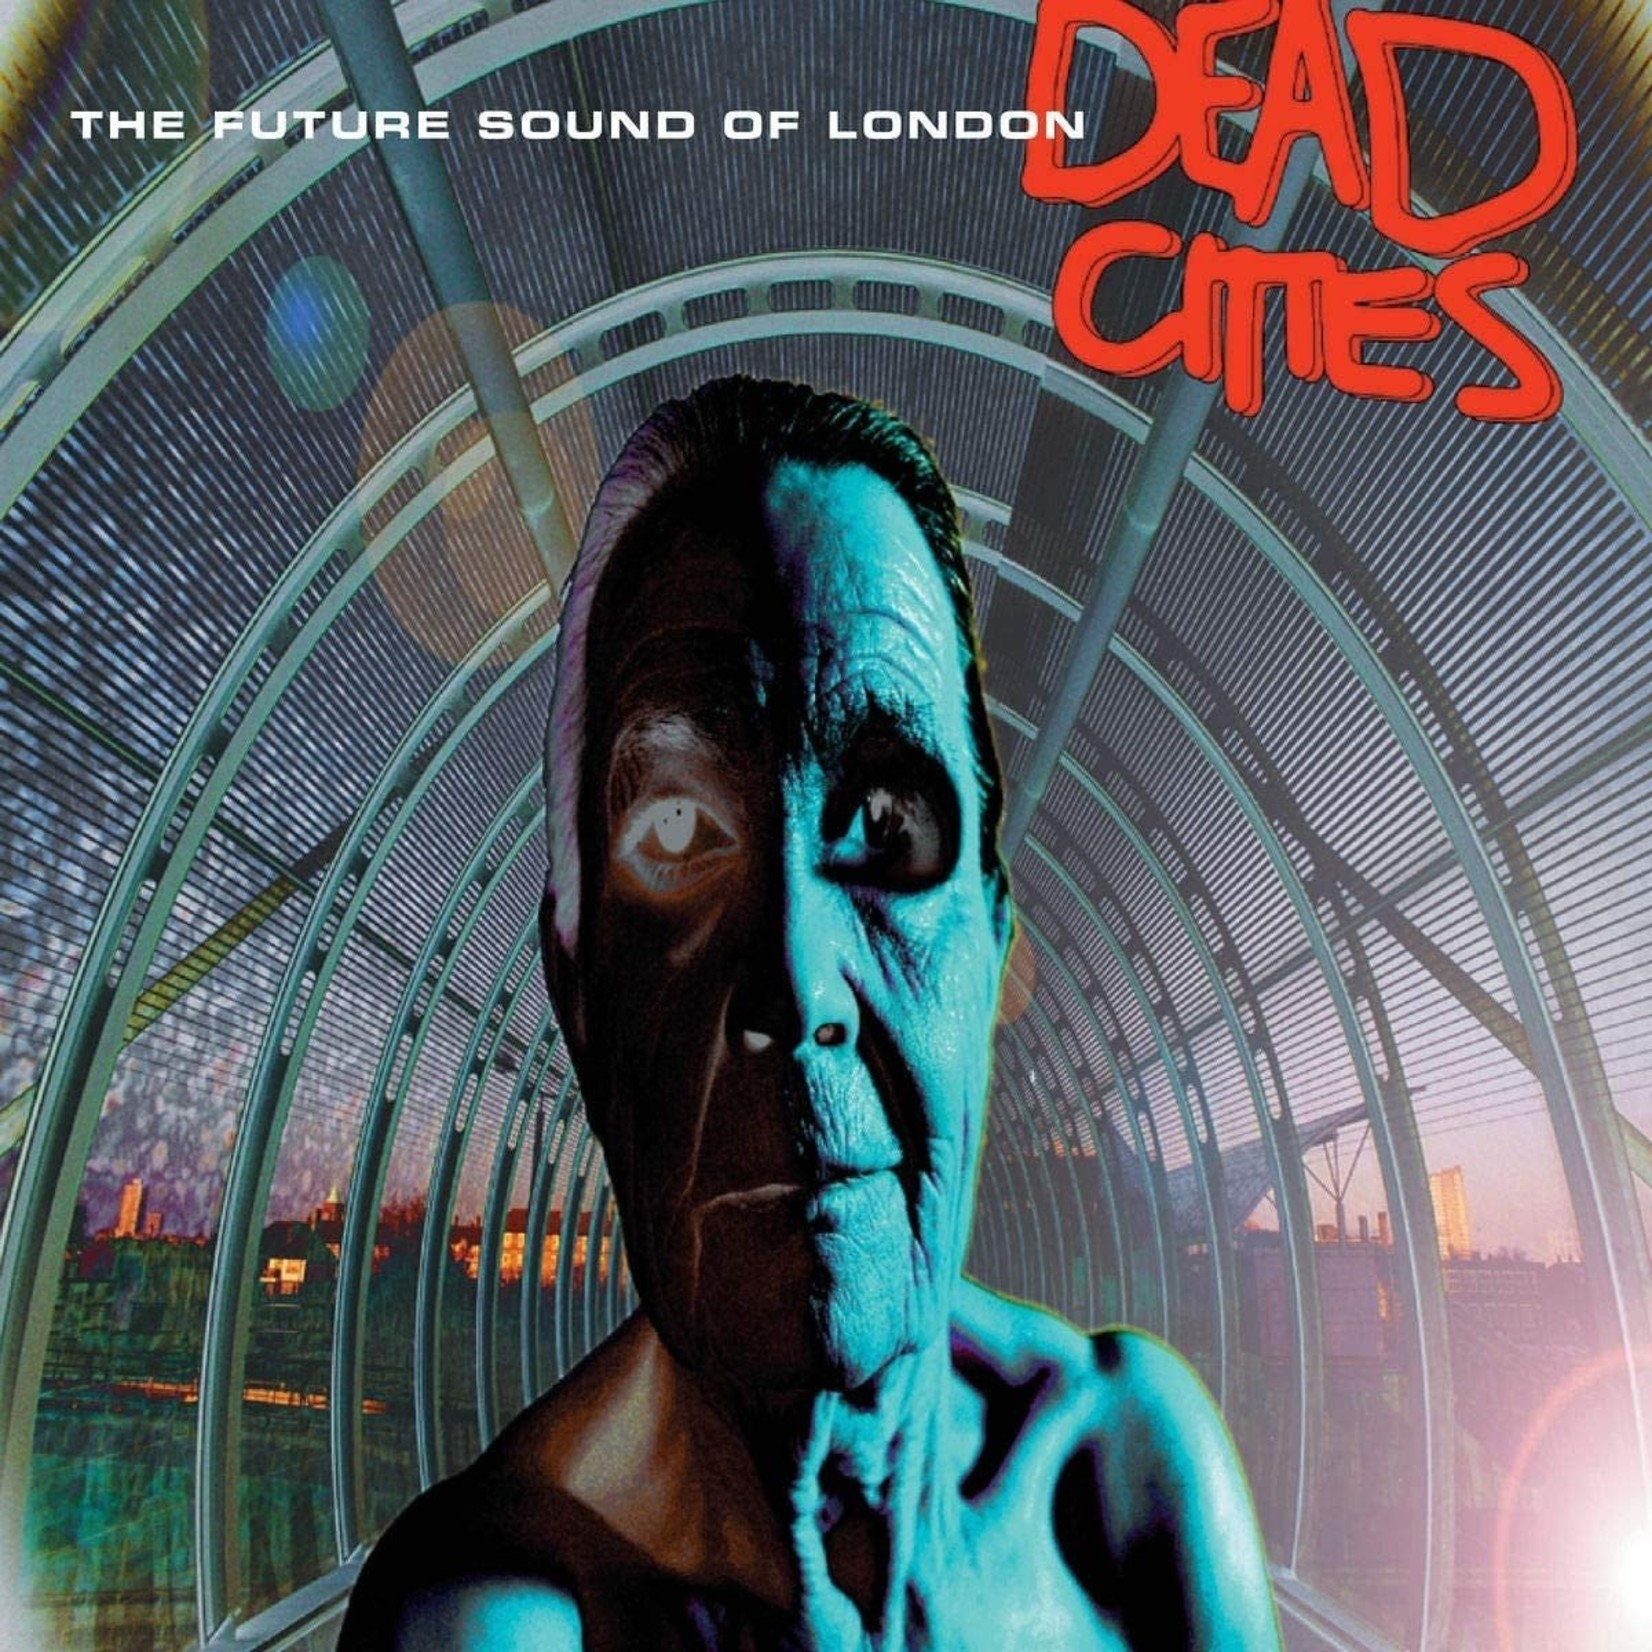 [New] Future Sound Of London: Dead Cities (2LP)